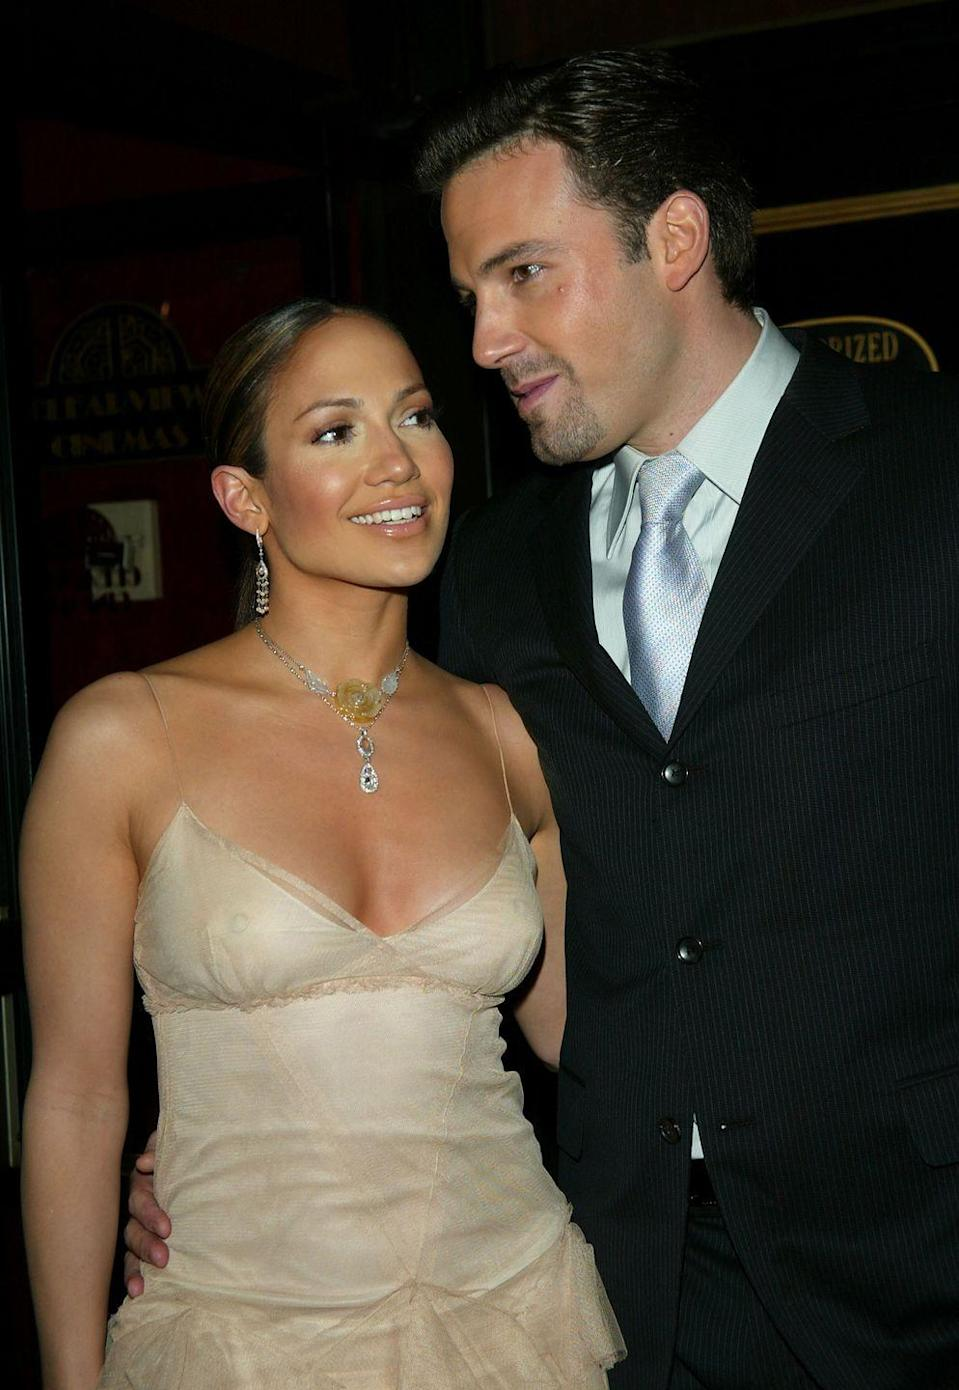 <p>Lopez and Affleck arrive at the <em>Maid In Manhattan</em> world premiere at The Ziegfeld Theatre in New York City on December 8, 2002.</p>